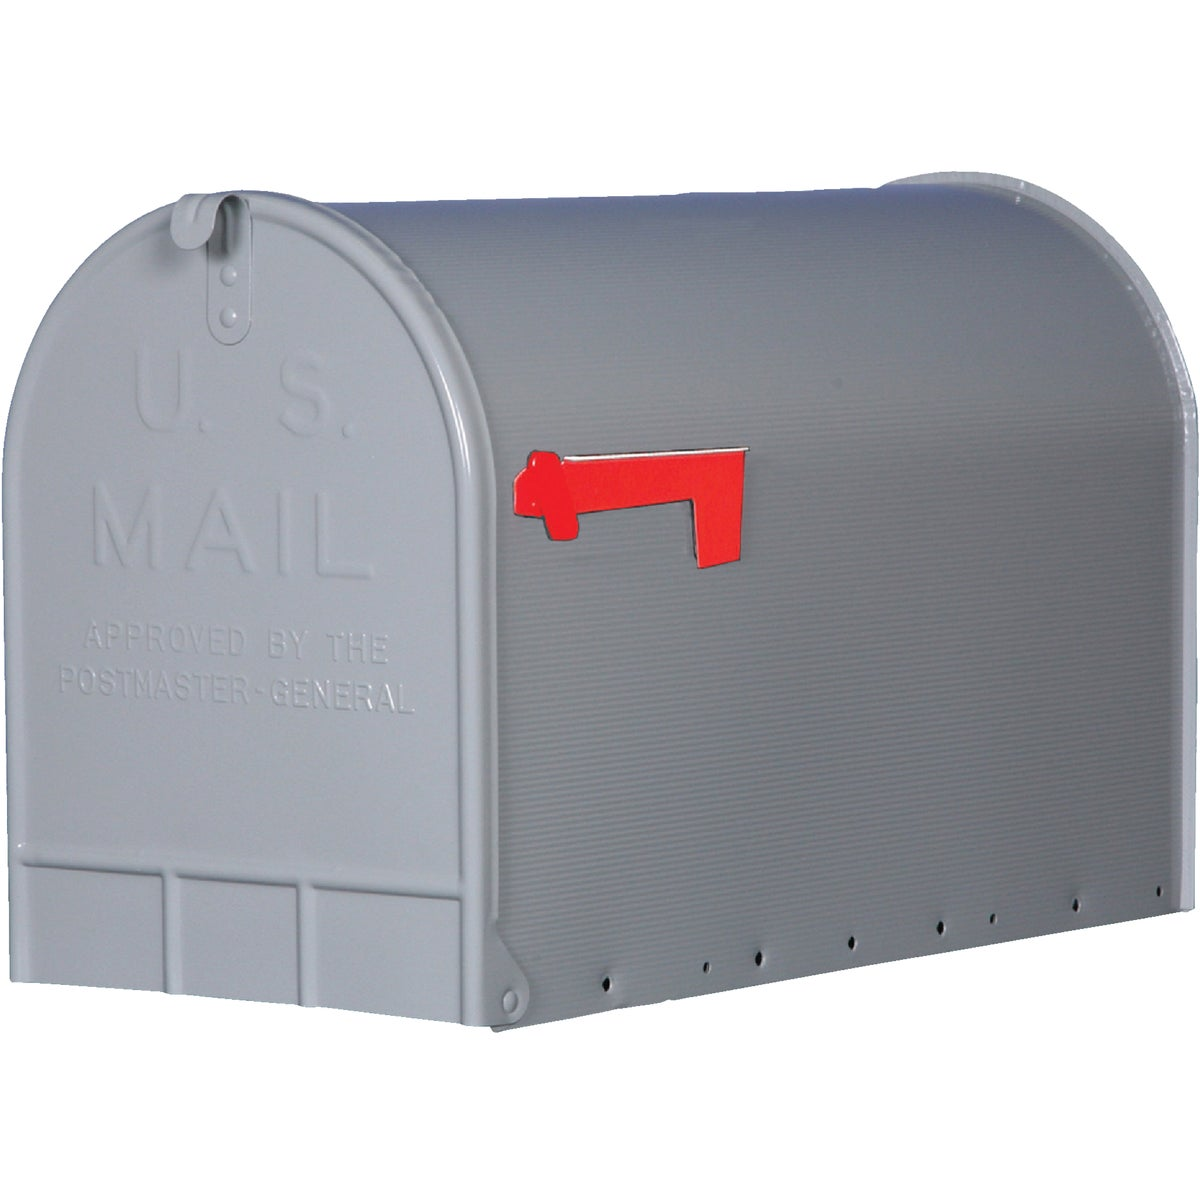 GRAY T3 MAILBOX - ST20 by Solar Group